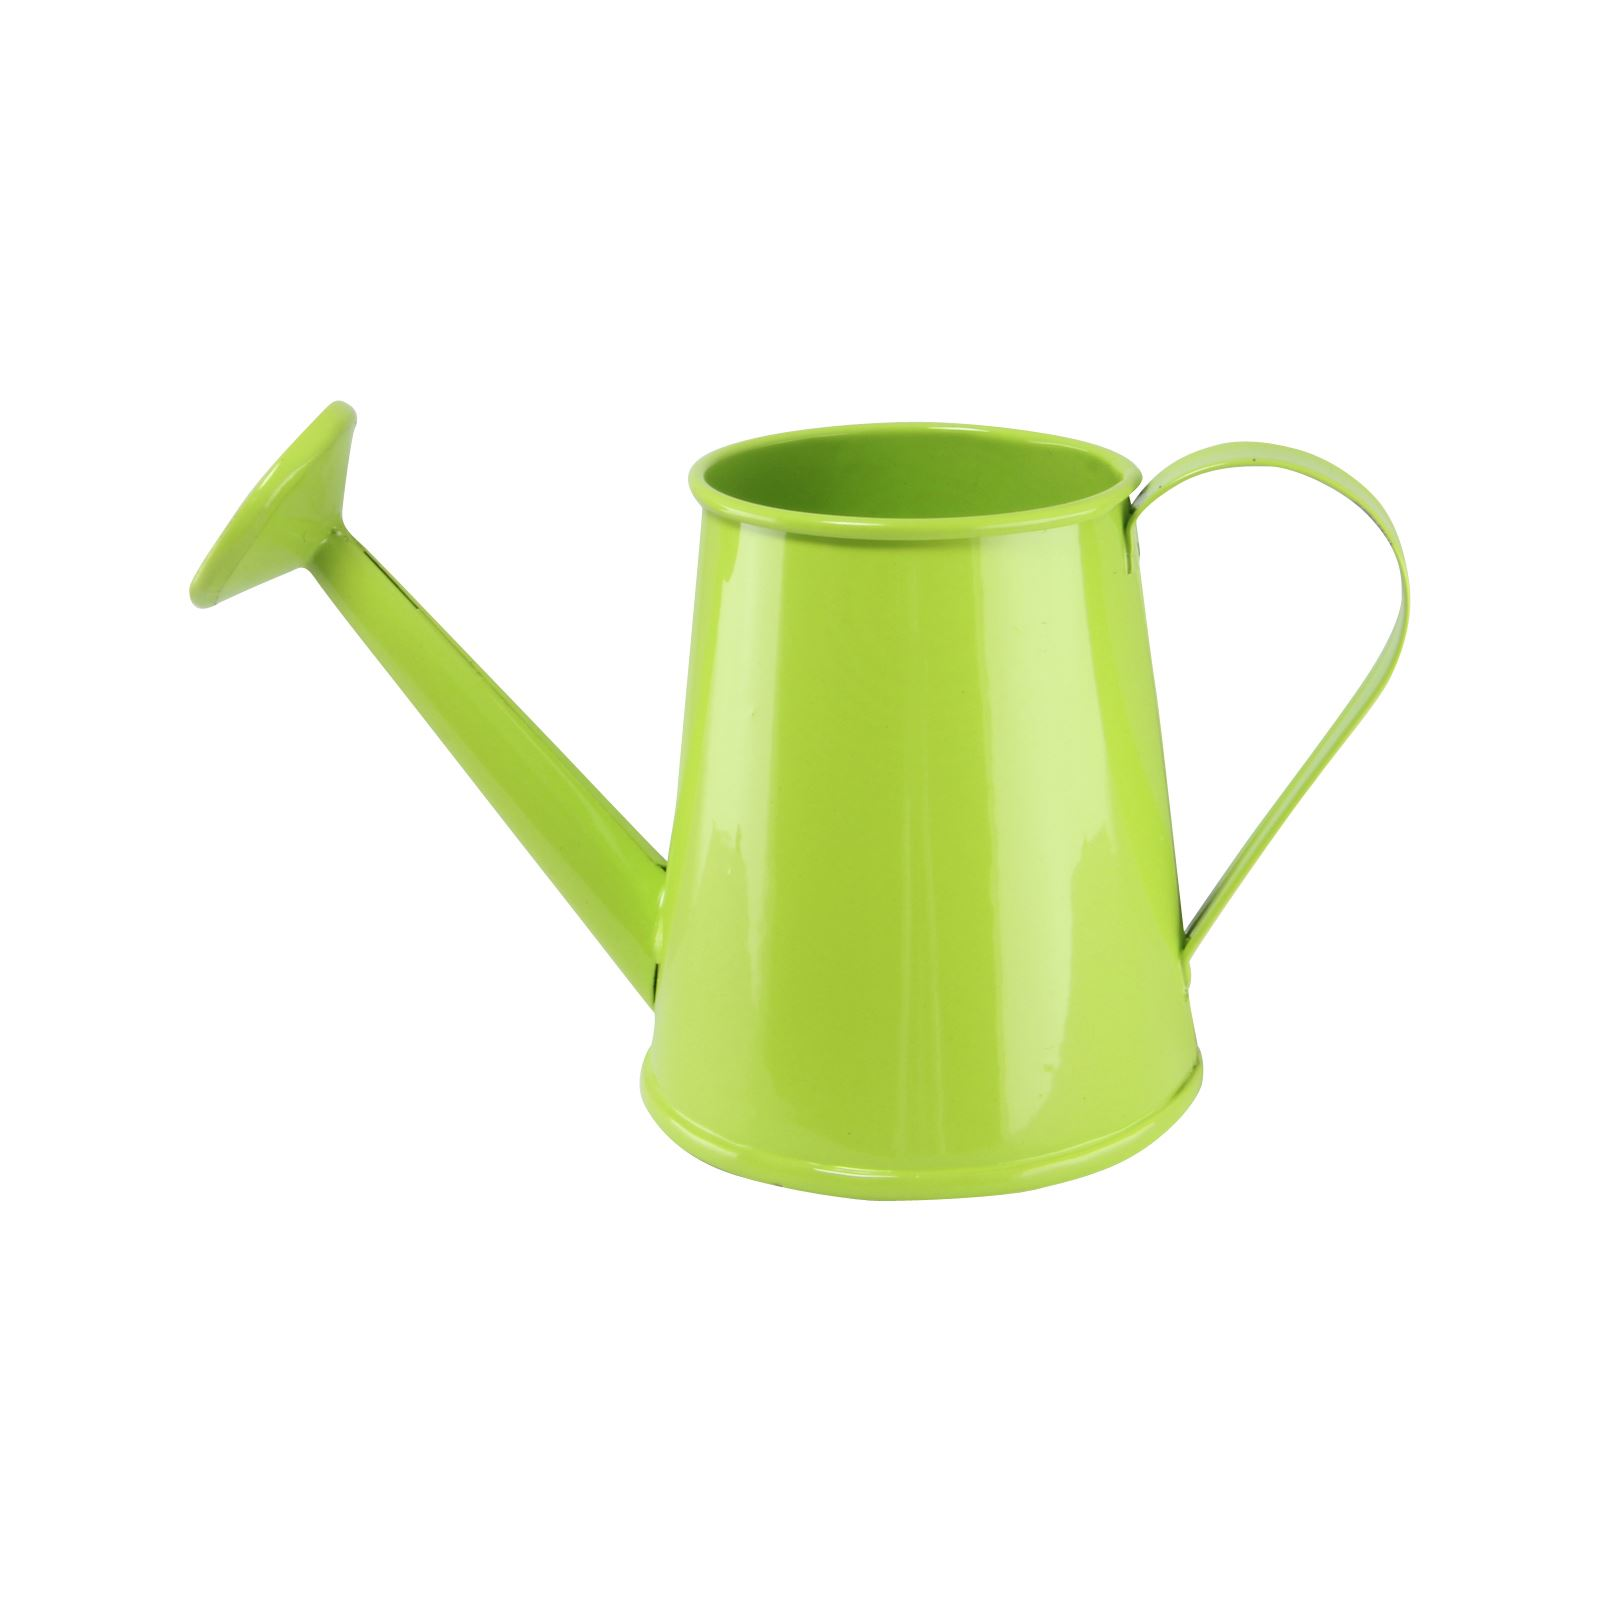 Small 9x15cm Watering Can Favor Mini Water Can Pot Jug Green | eBay